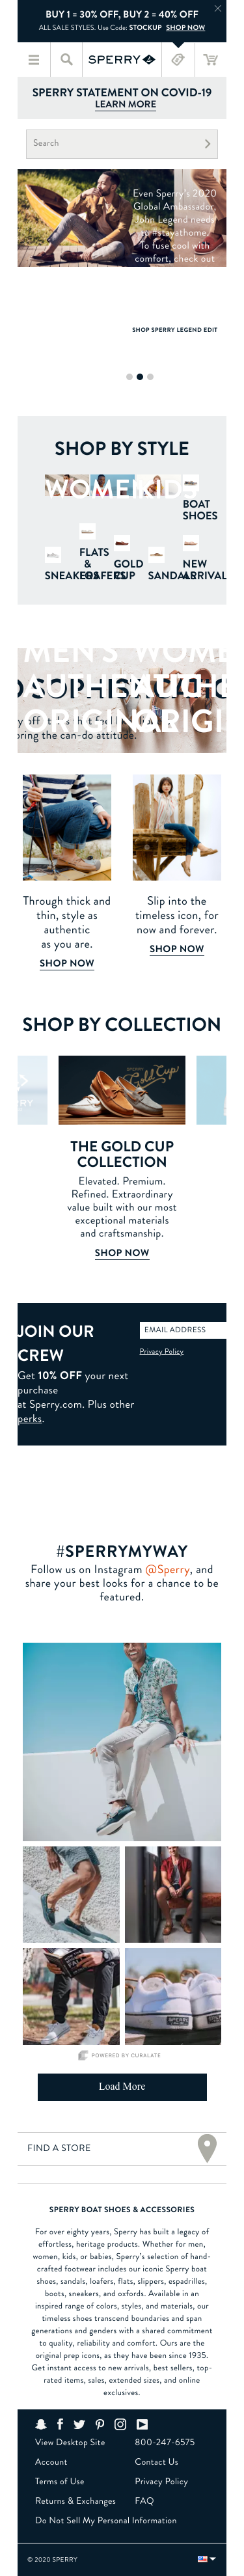 Sperry Coupon